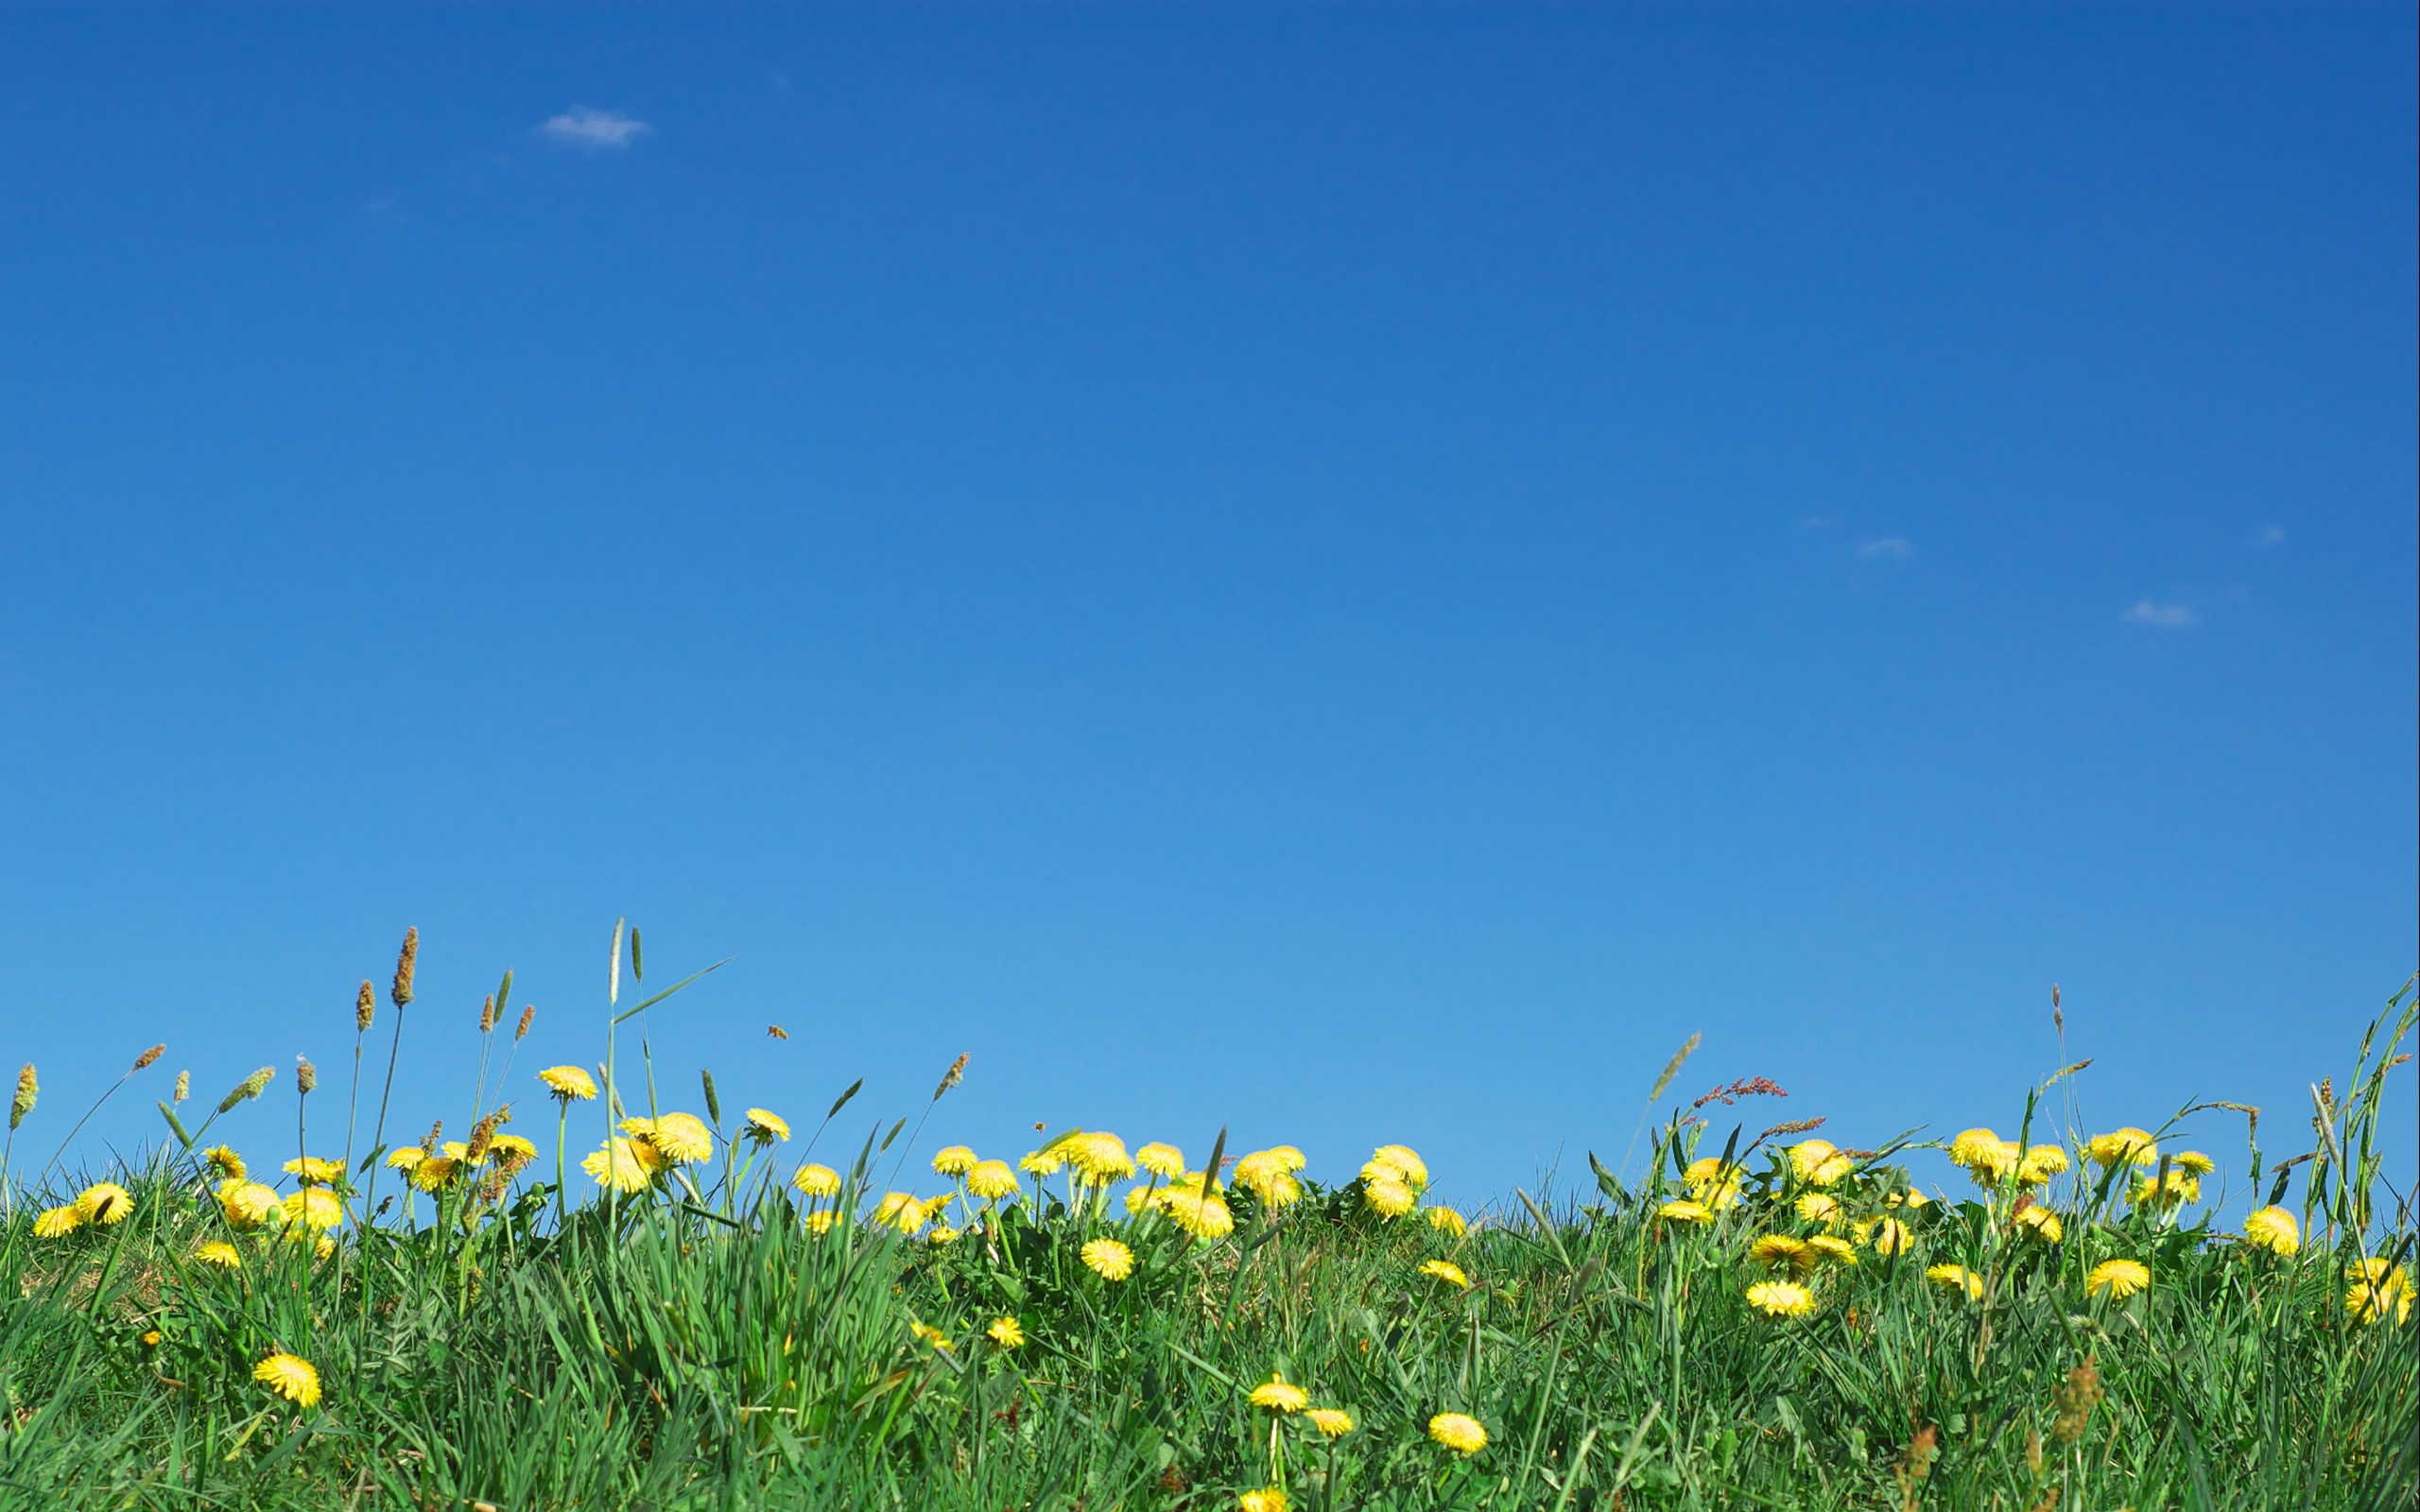 2560x1600 Flowers and sky desktop PC and Mac wallpaper 2560x1600